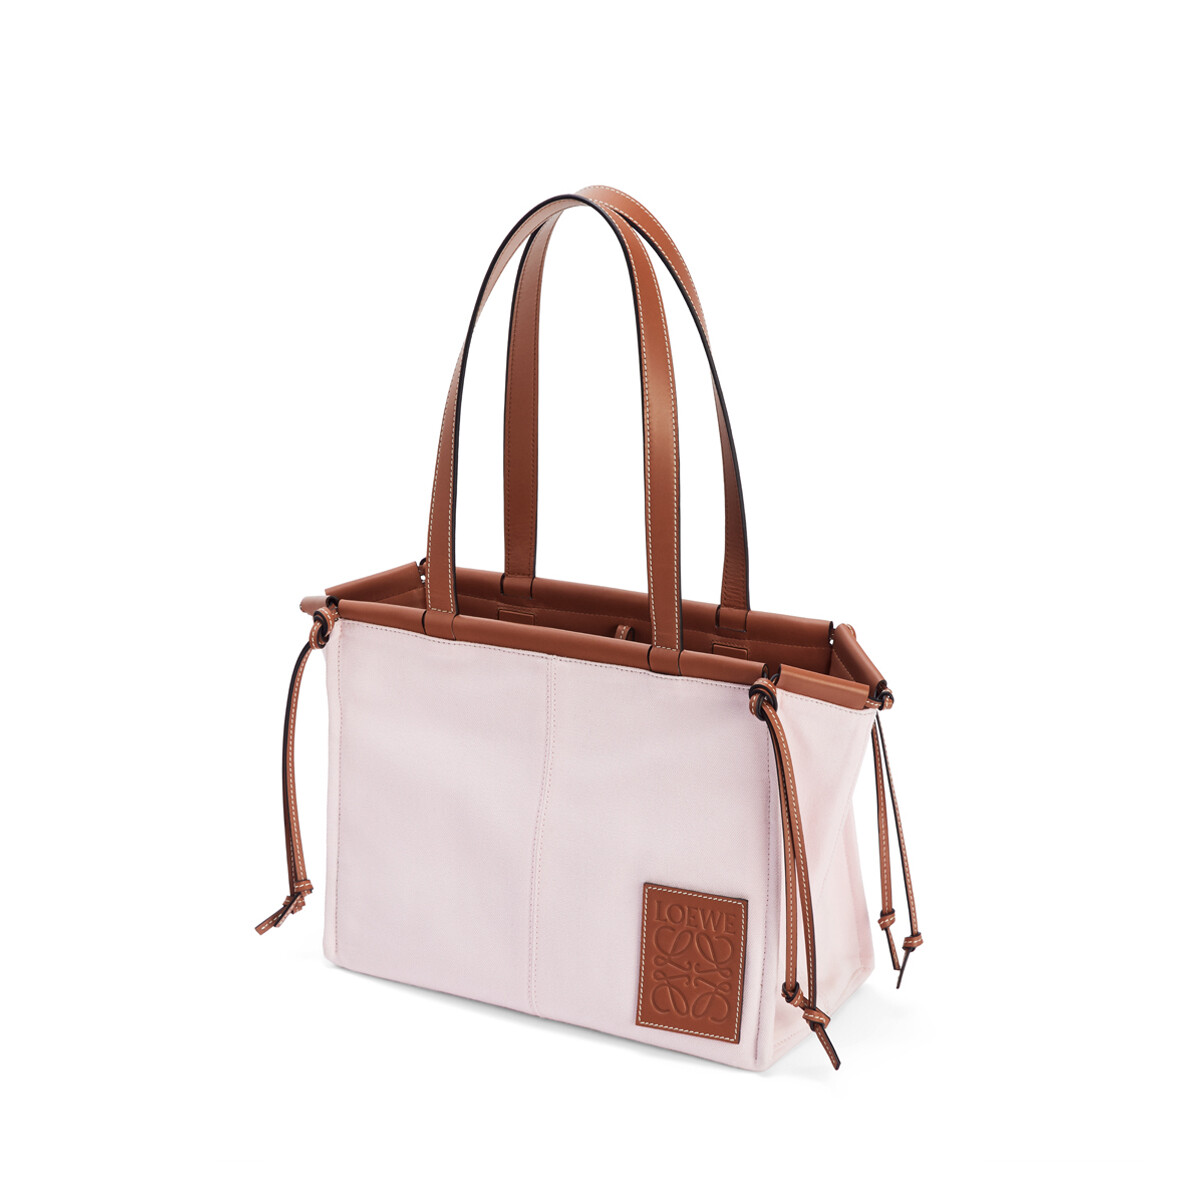 LOEWE Bolso Cushion Tote Pequeño Rosa Claro front